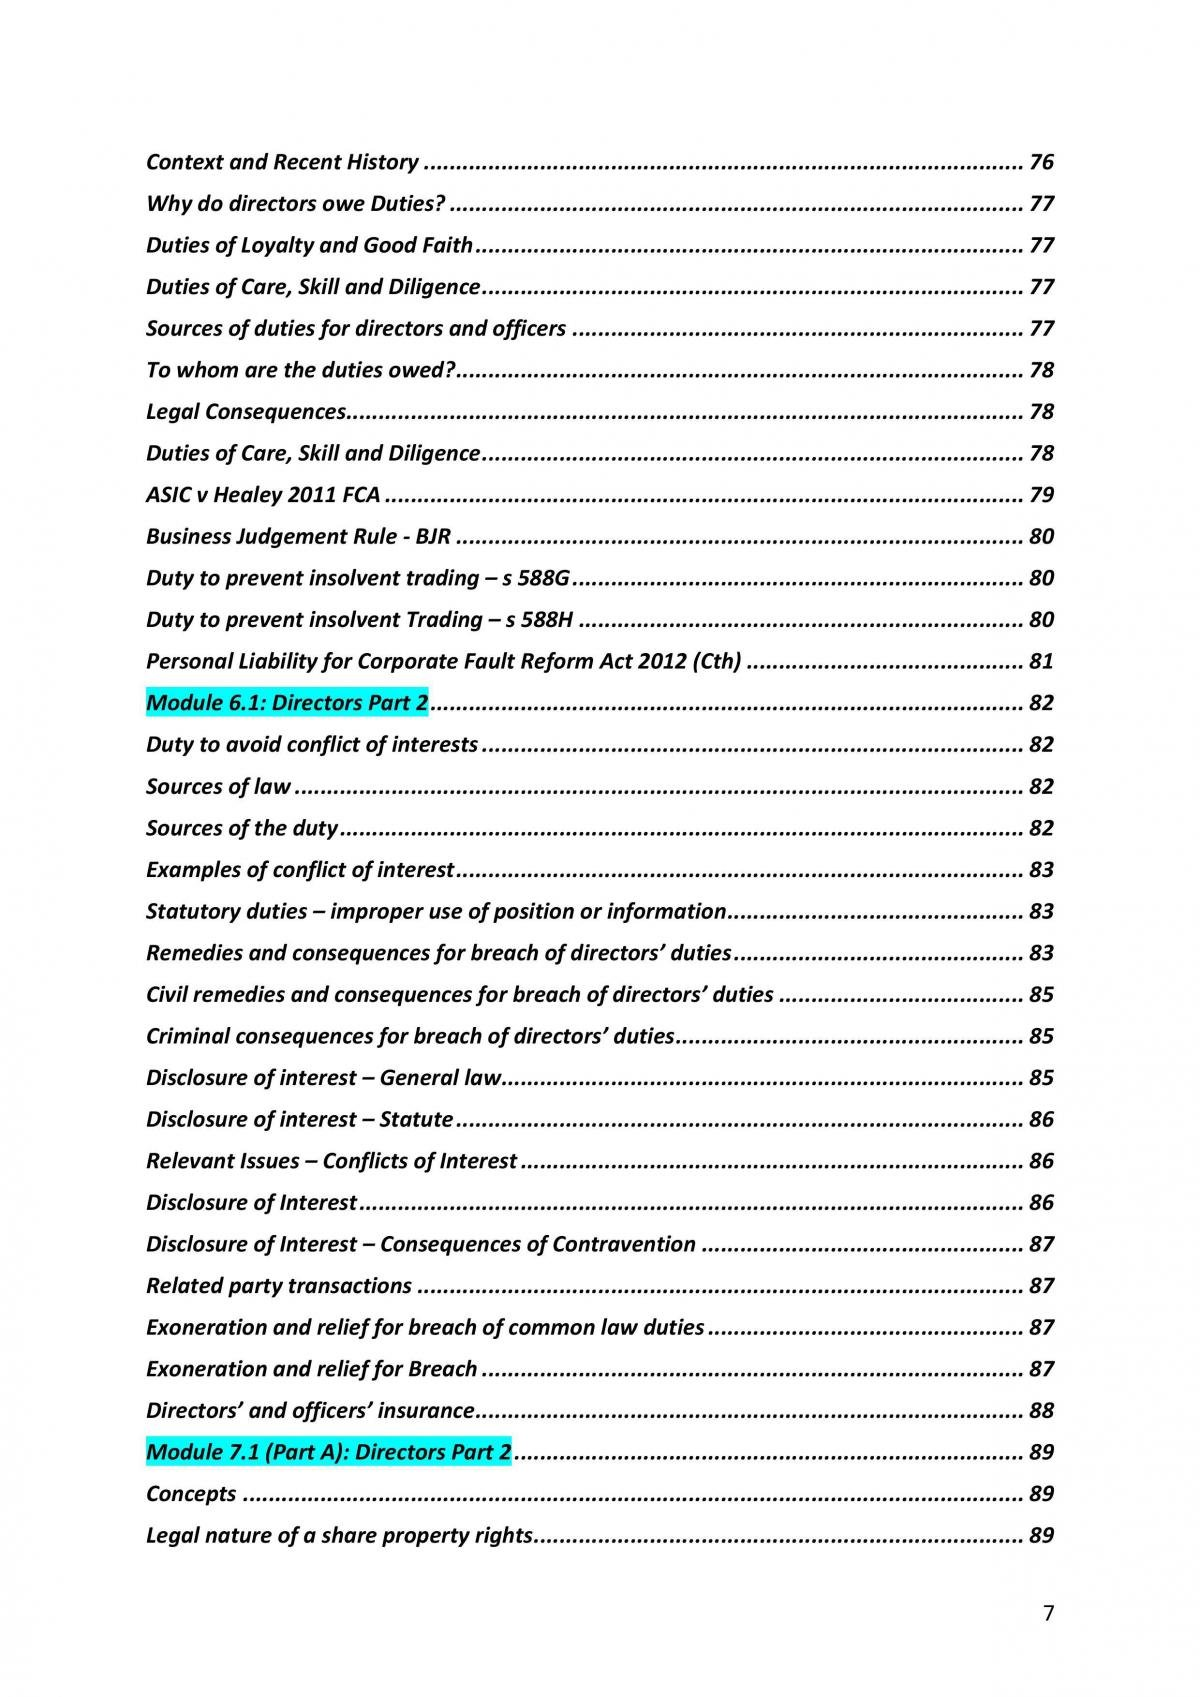 HD Corporations Law Complete Notes - Page 8